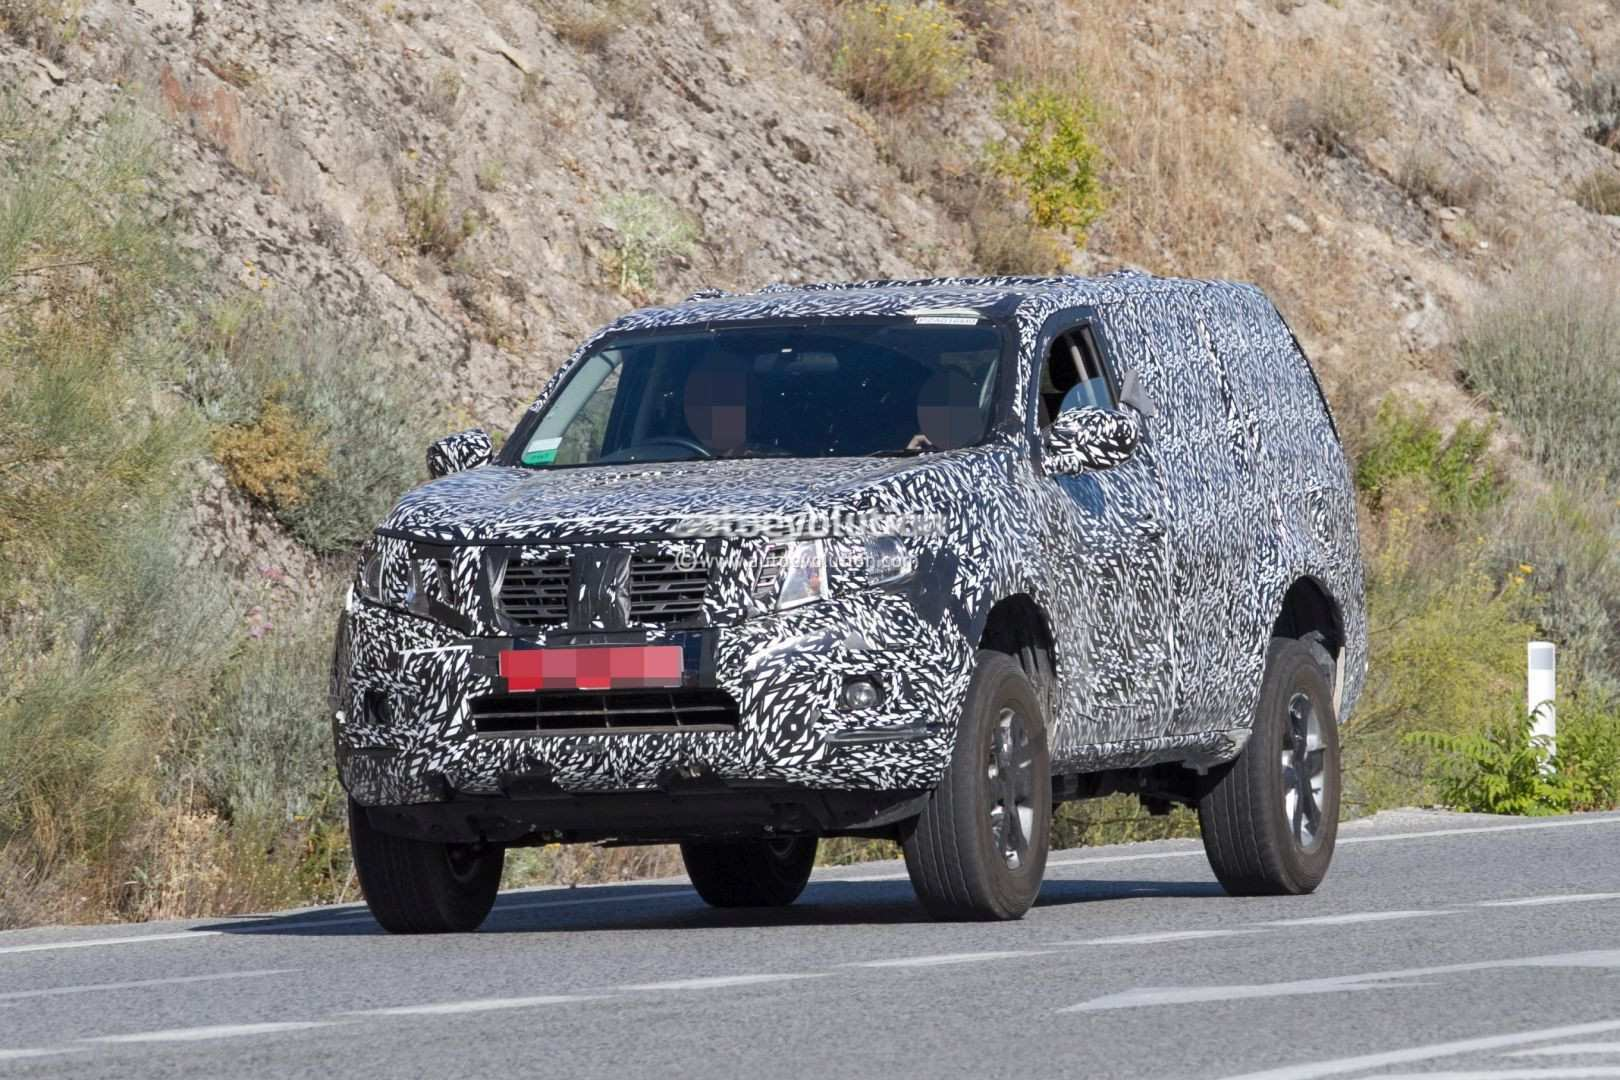 76 All New Nissan Patrol 2020 Overview